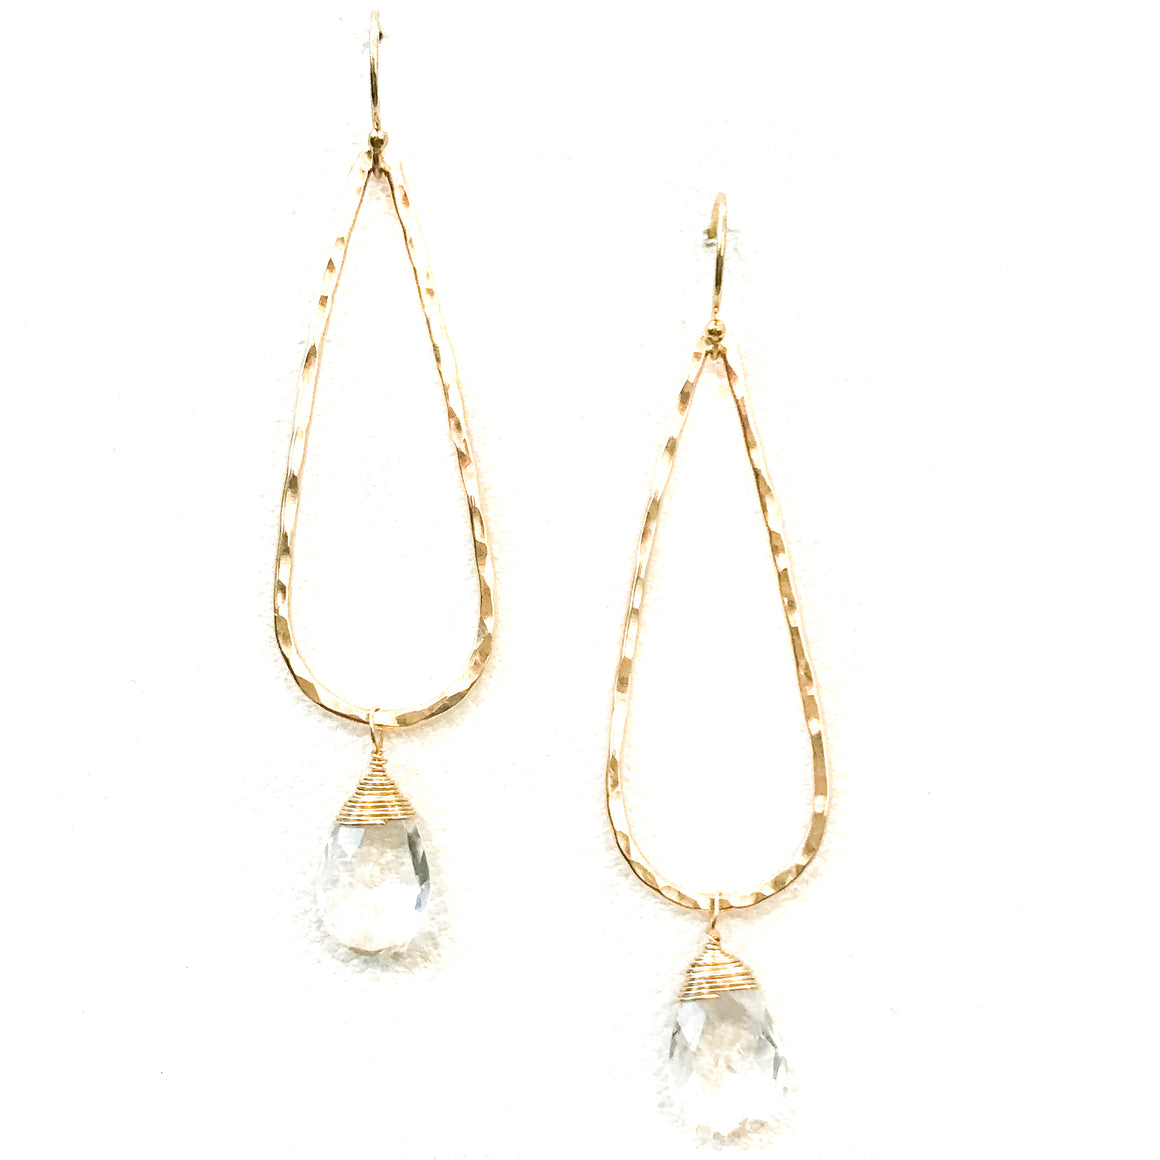 Day 6:  Crystal Teardrop Earrings